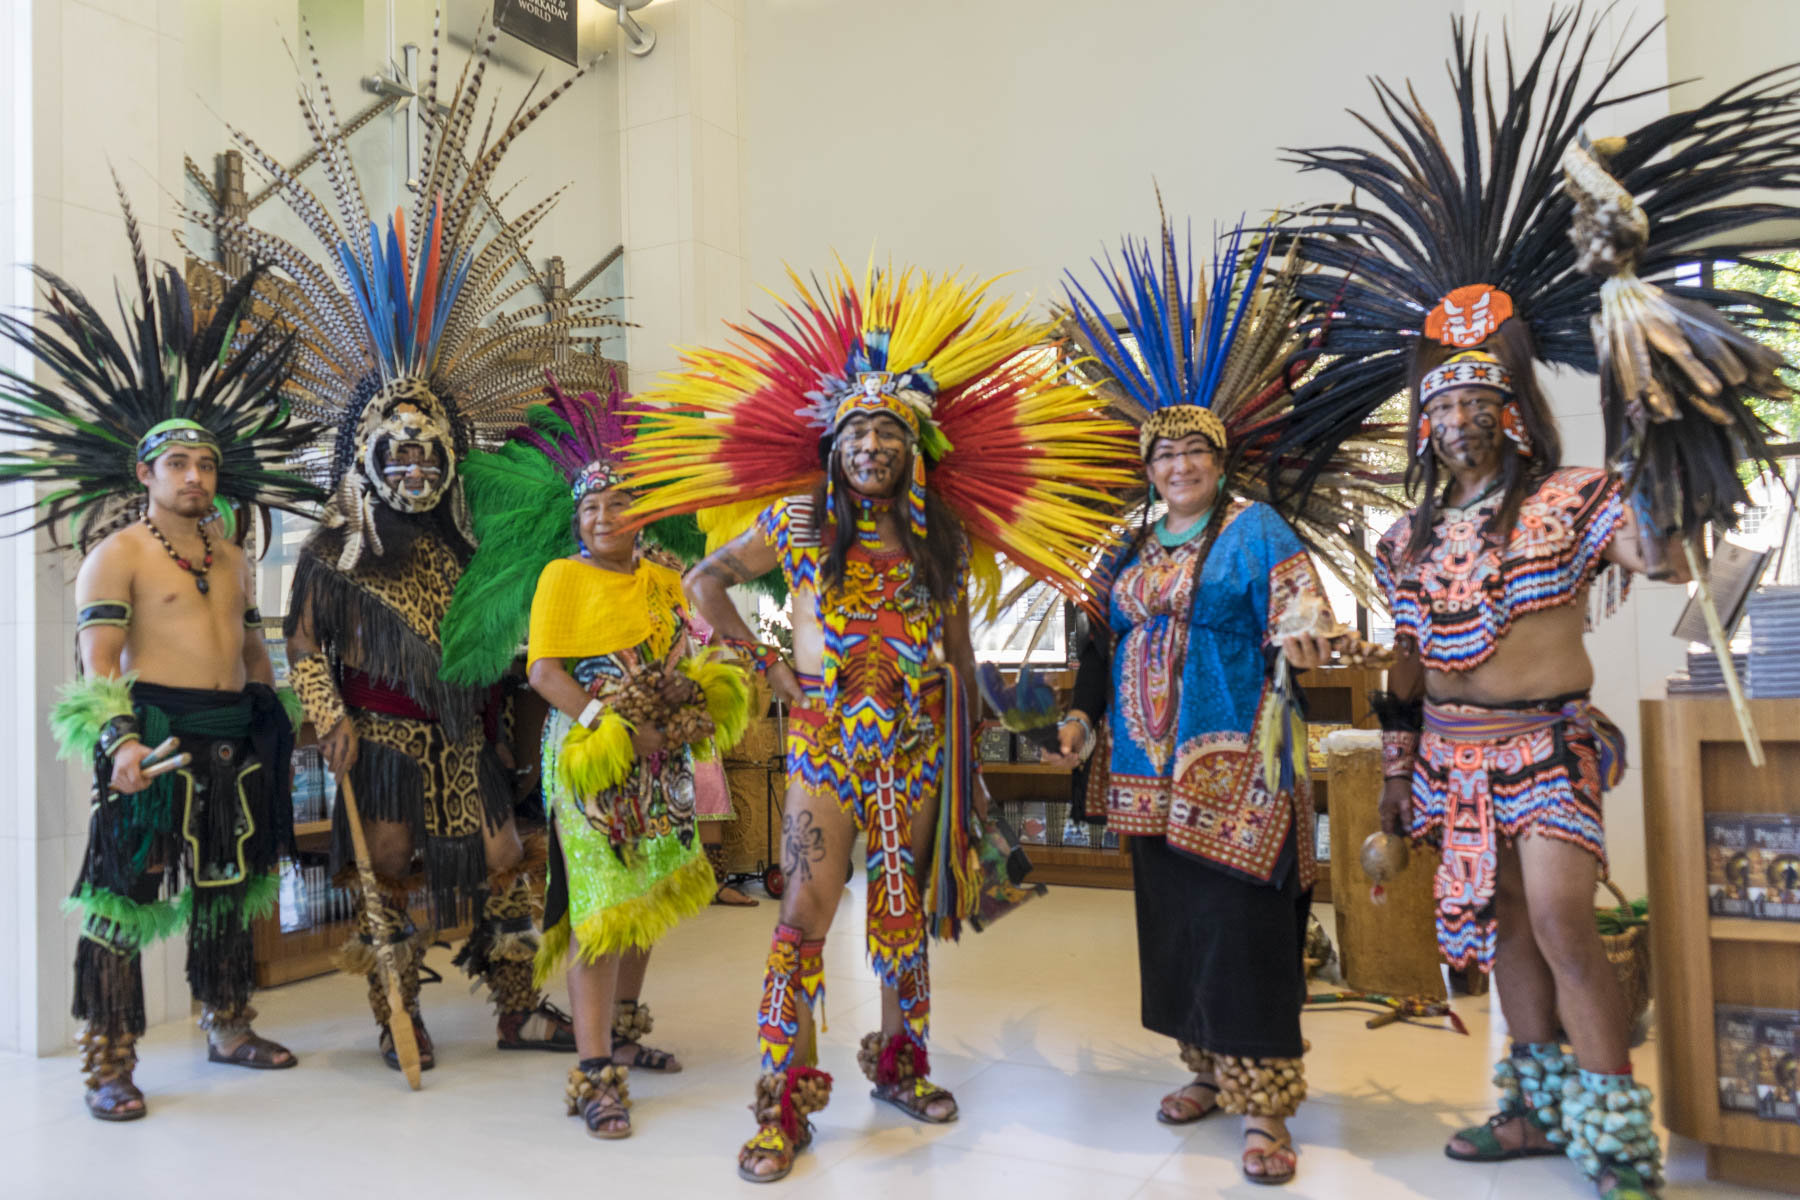 Aztec culture featured at the first of four interfaith forums at the Church of Scientology Los Angeles.